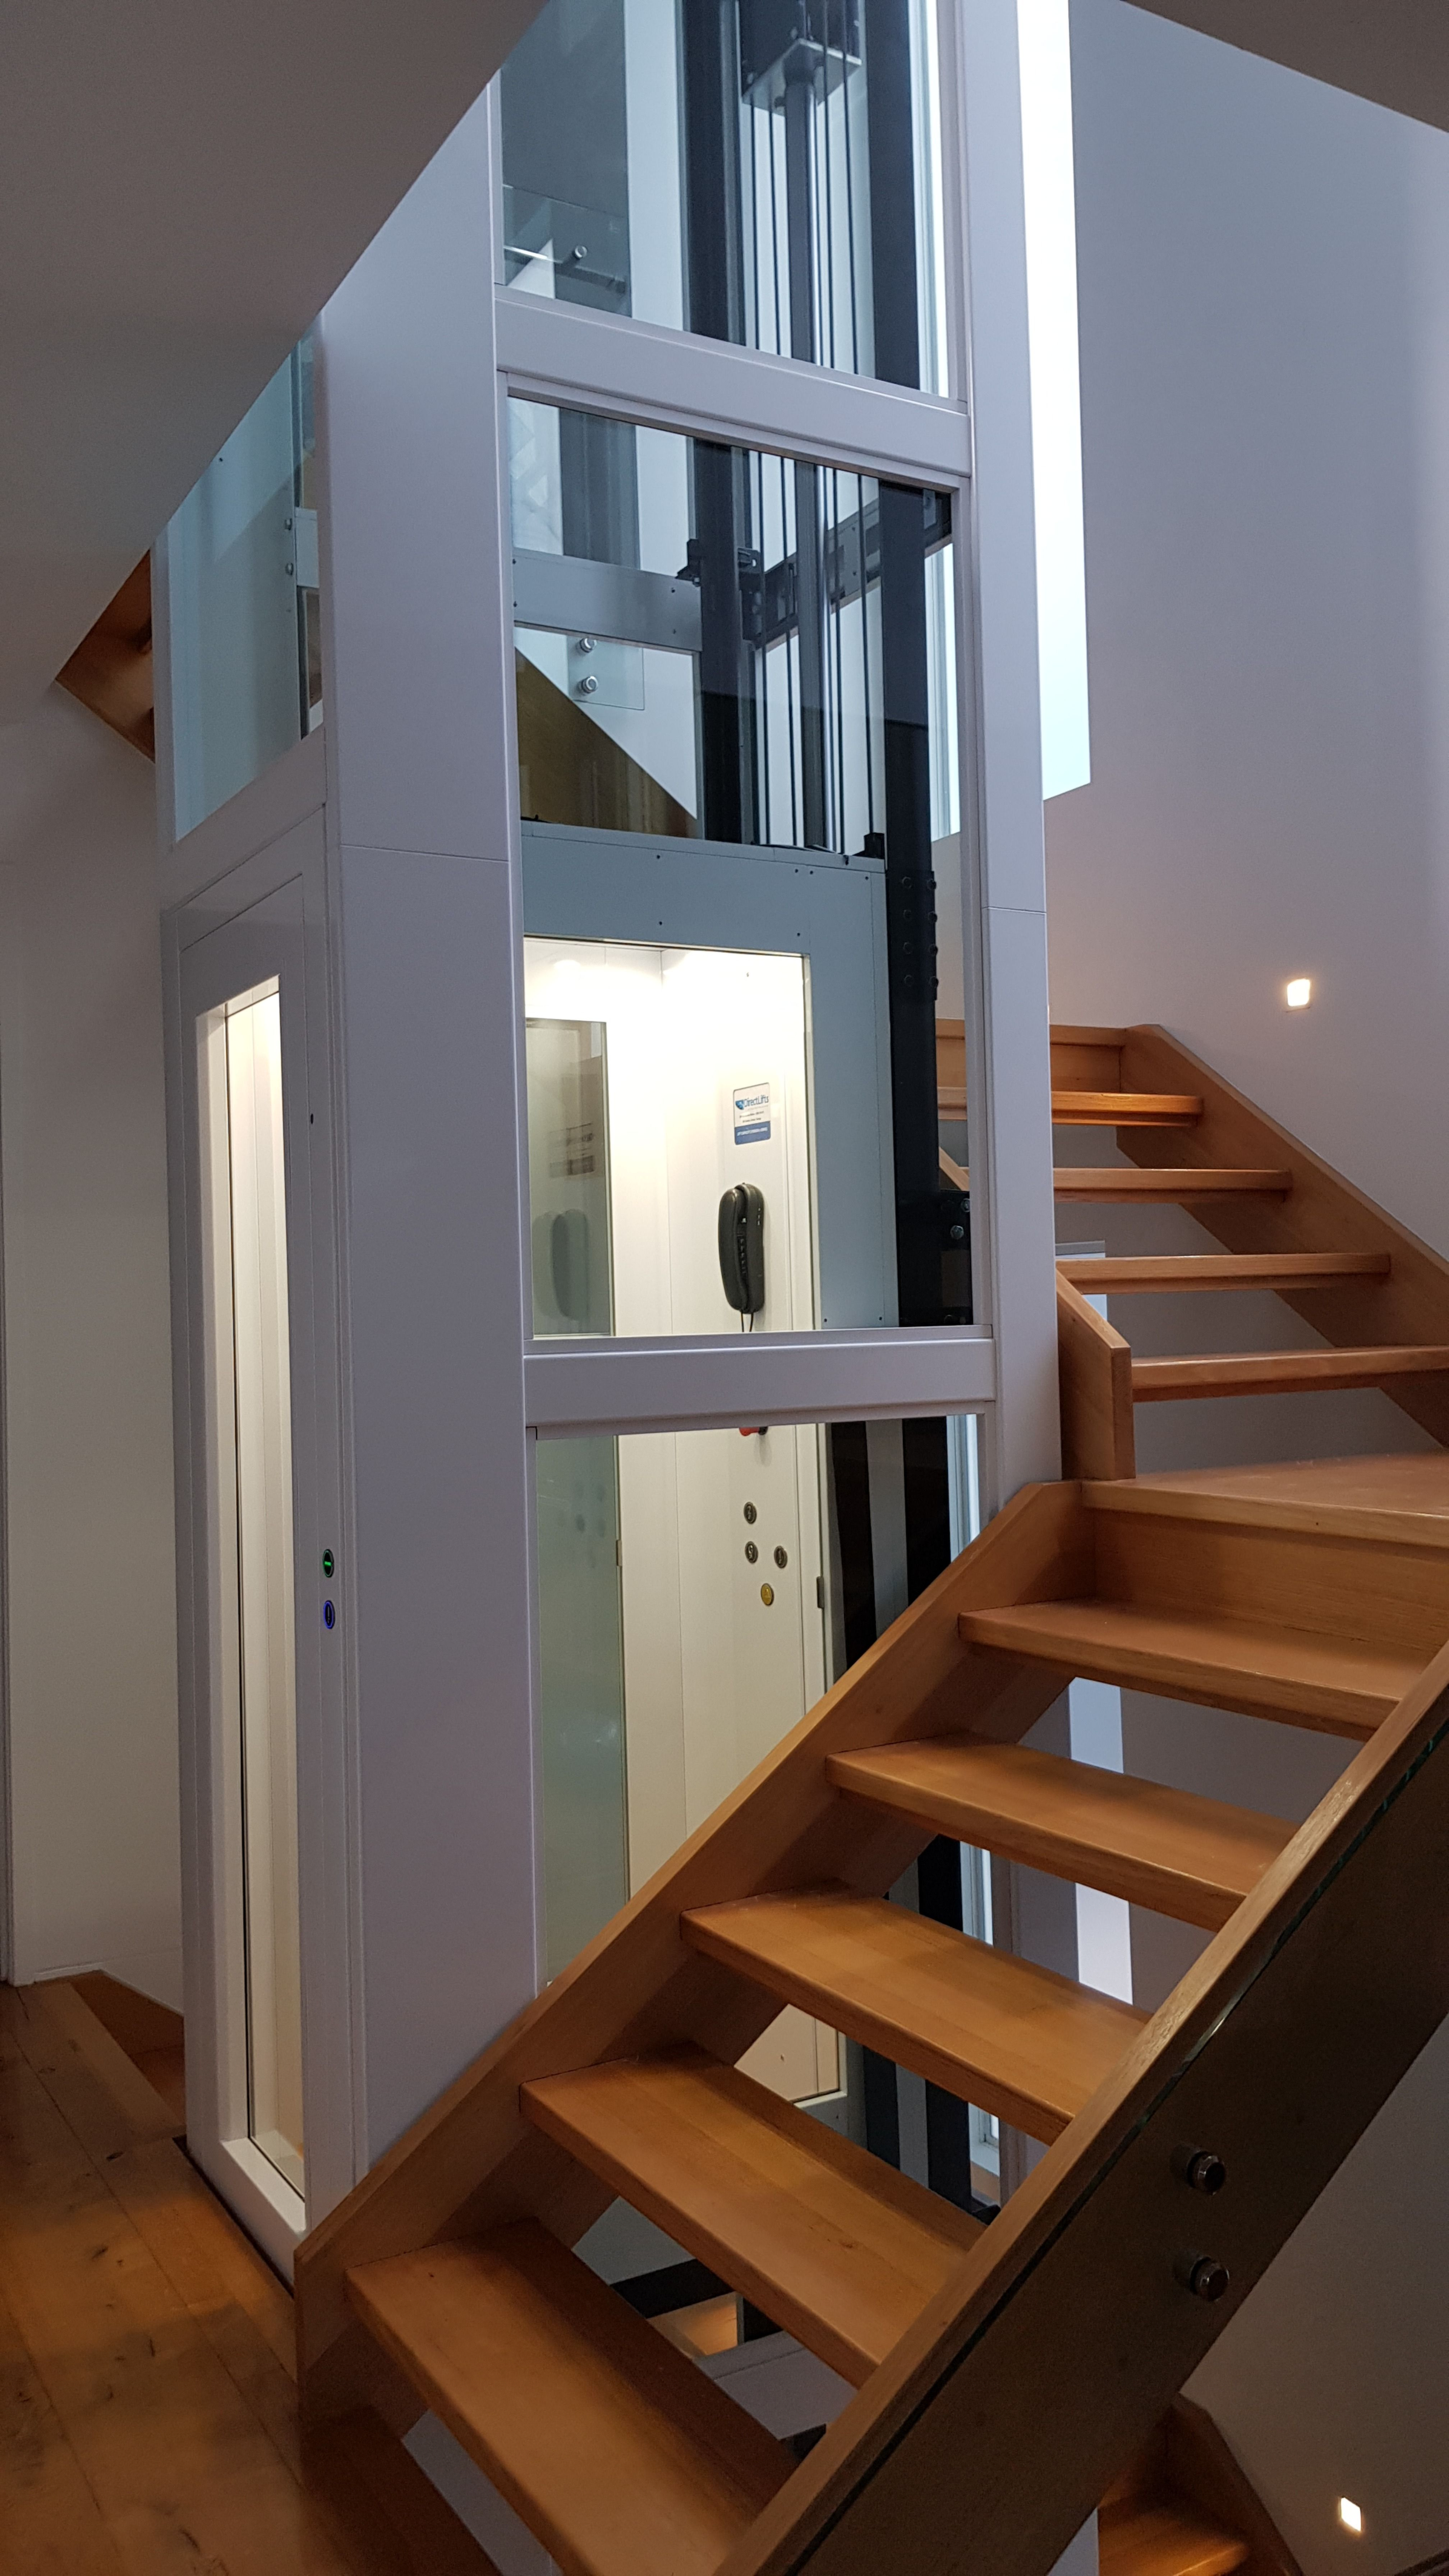 FlexE Home Lift Made in Europe & Locally Assembled in